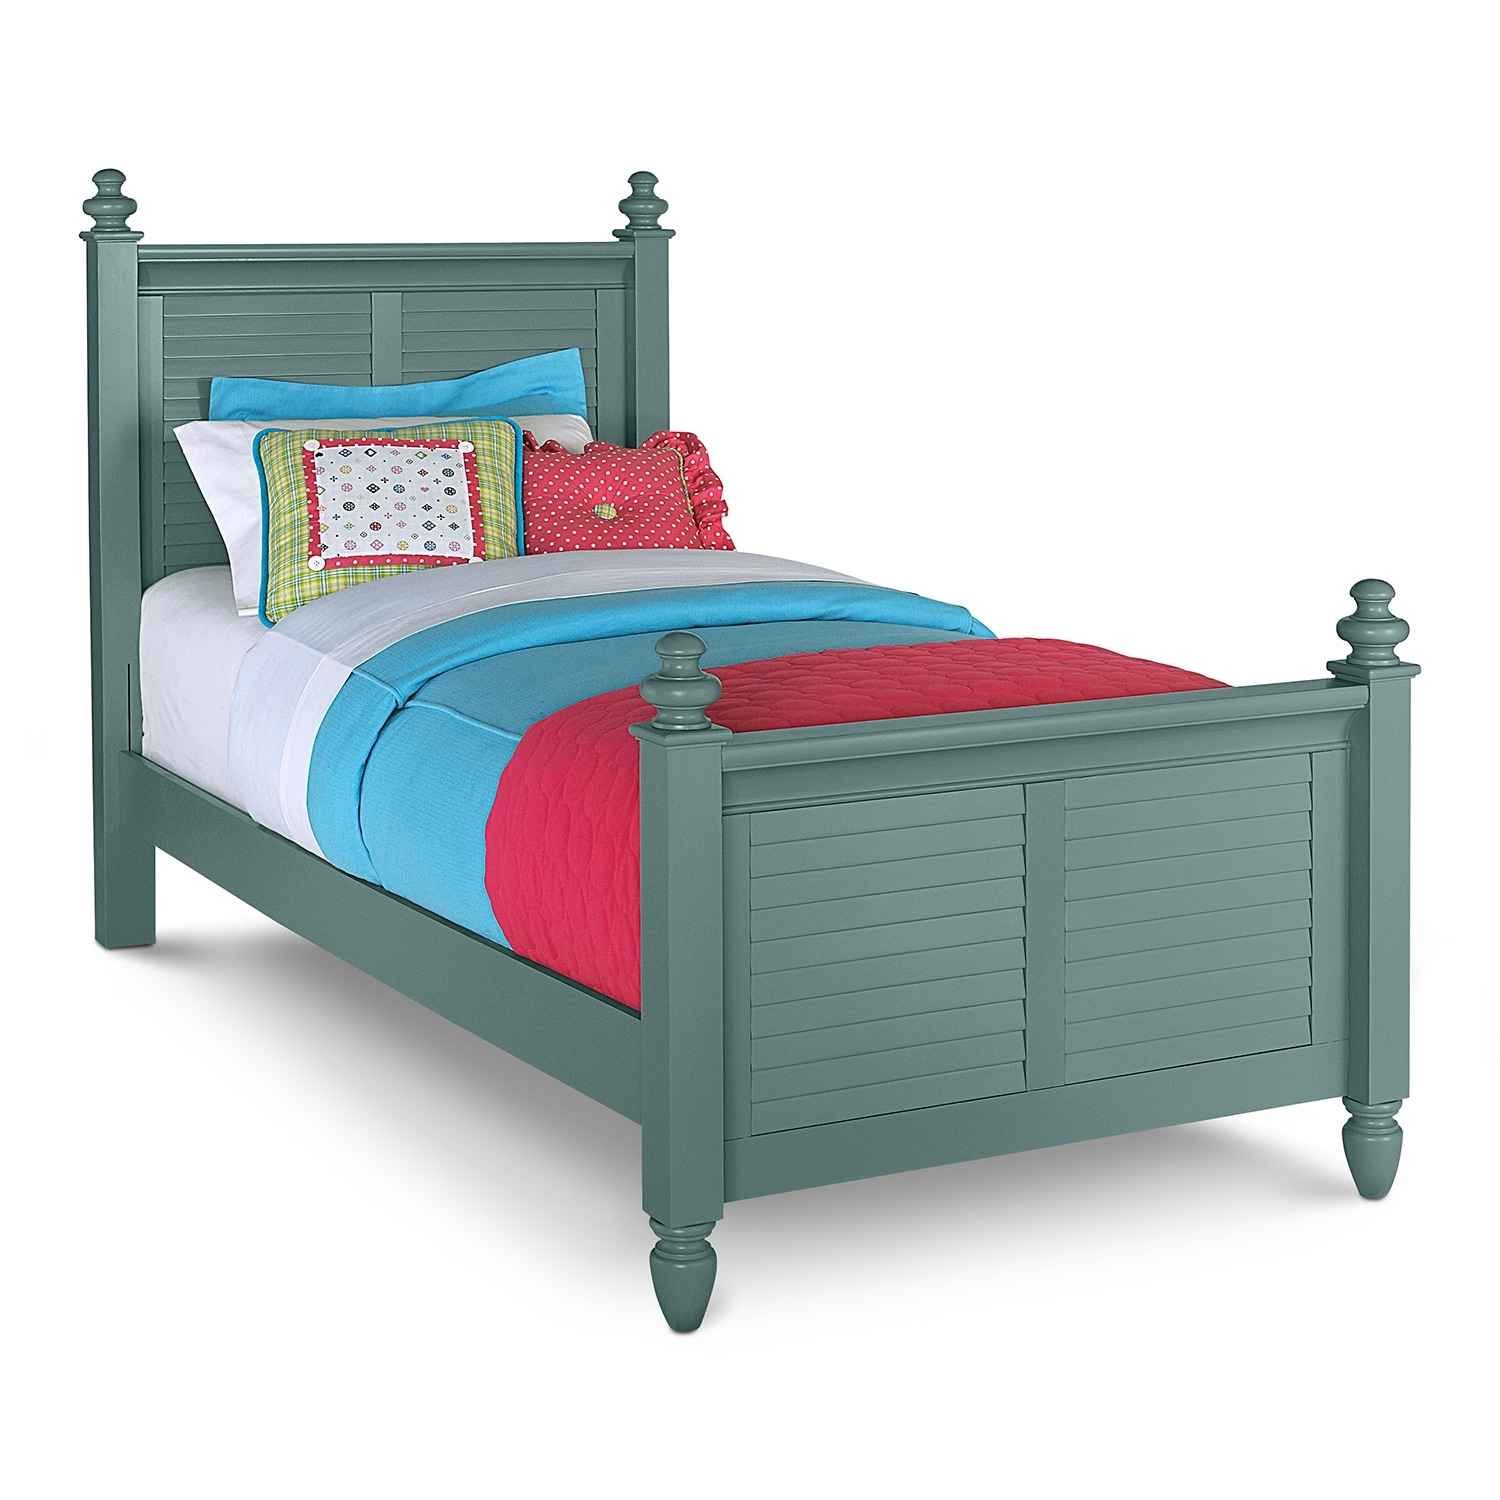 Kids Furniture - Seaside Twin Bed - Blue